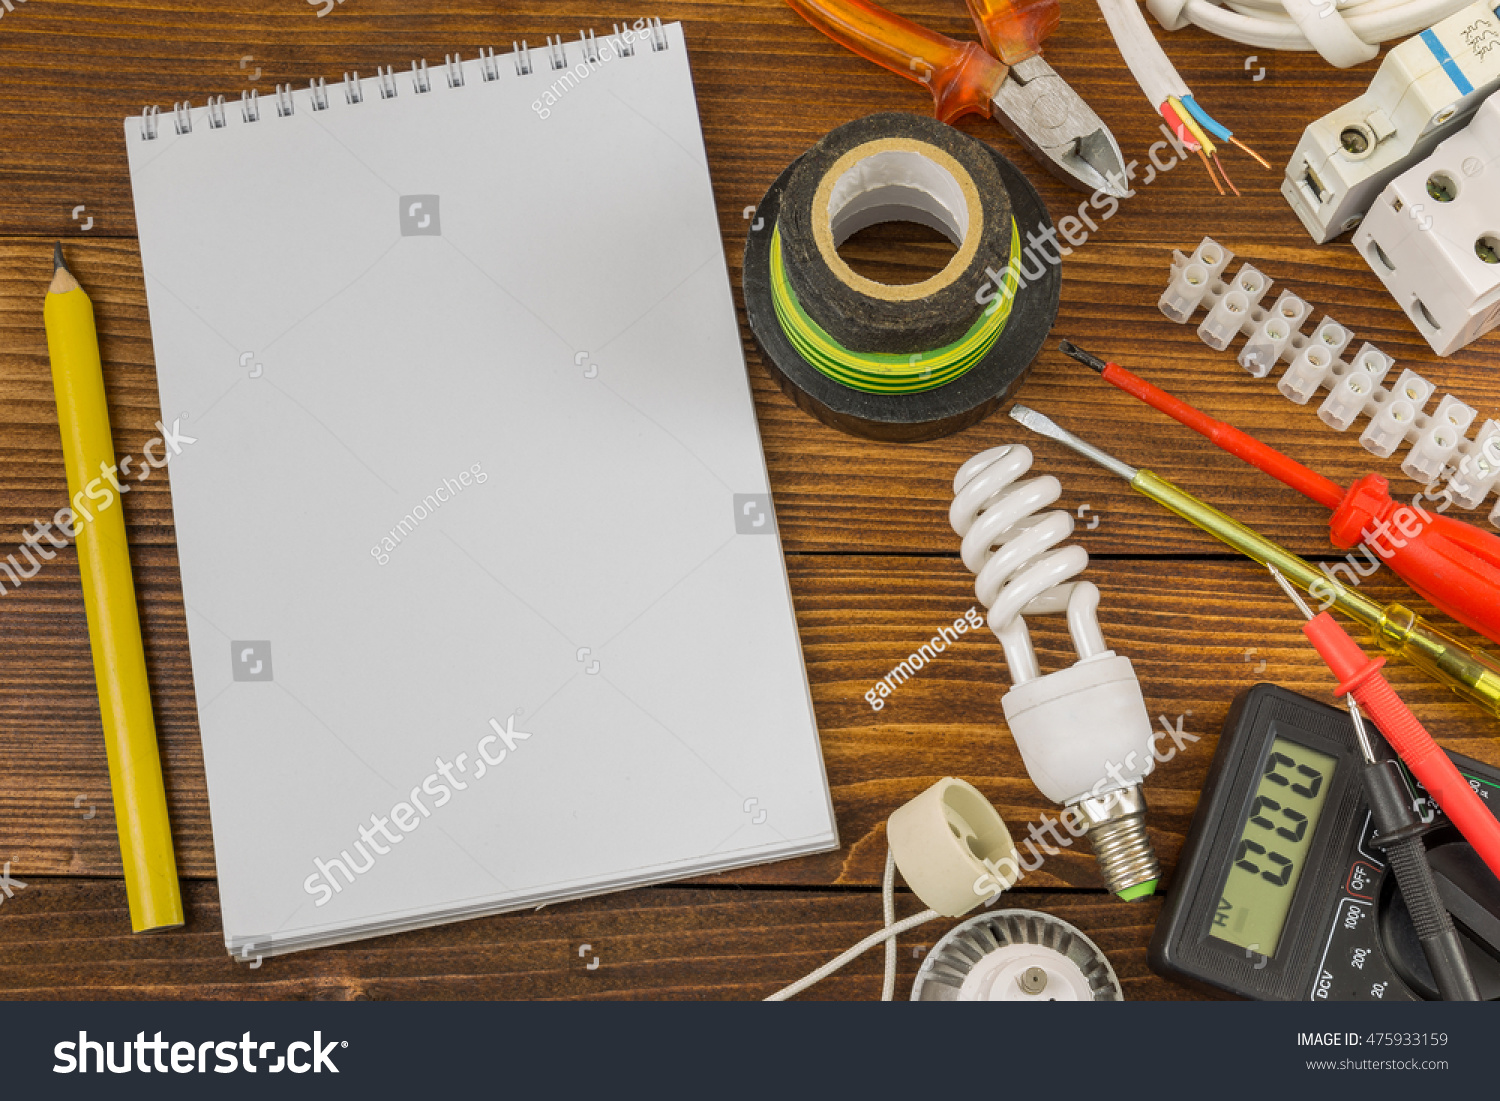 Still life electrical components arranged on stock photo download still life of electrical components arranged on wooden work table greentooth Images